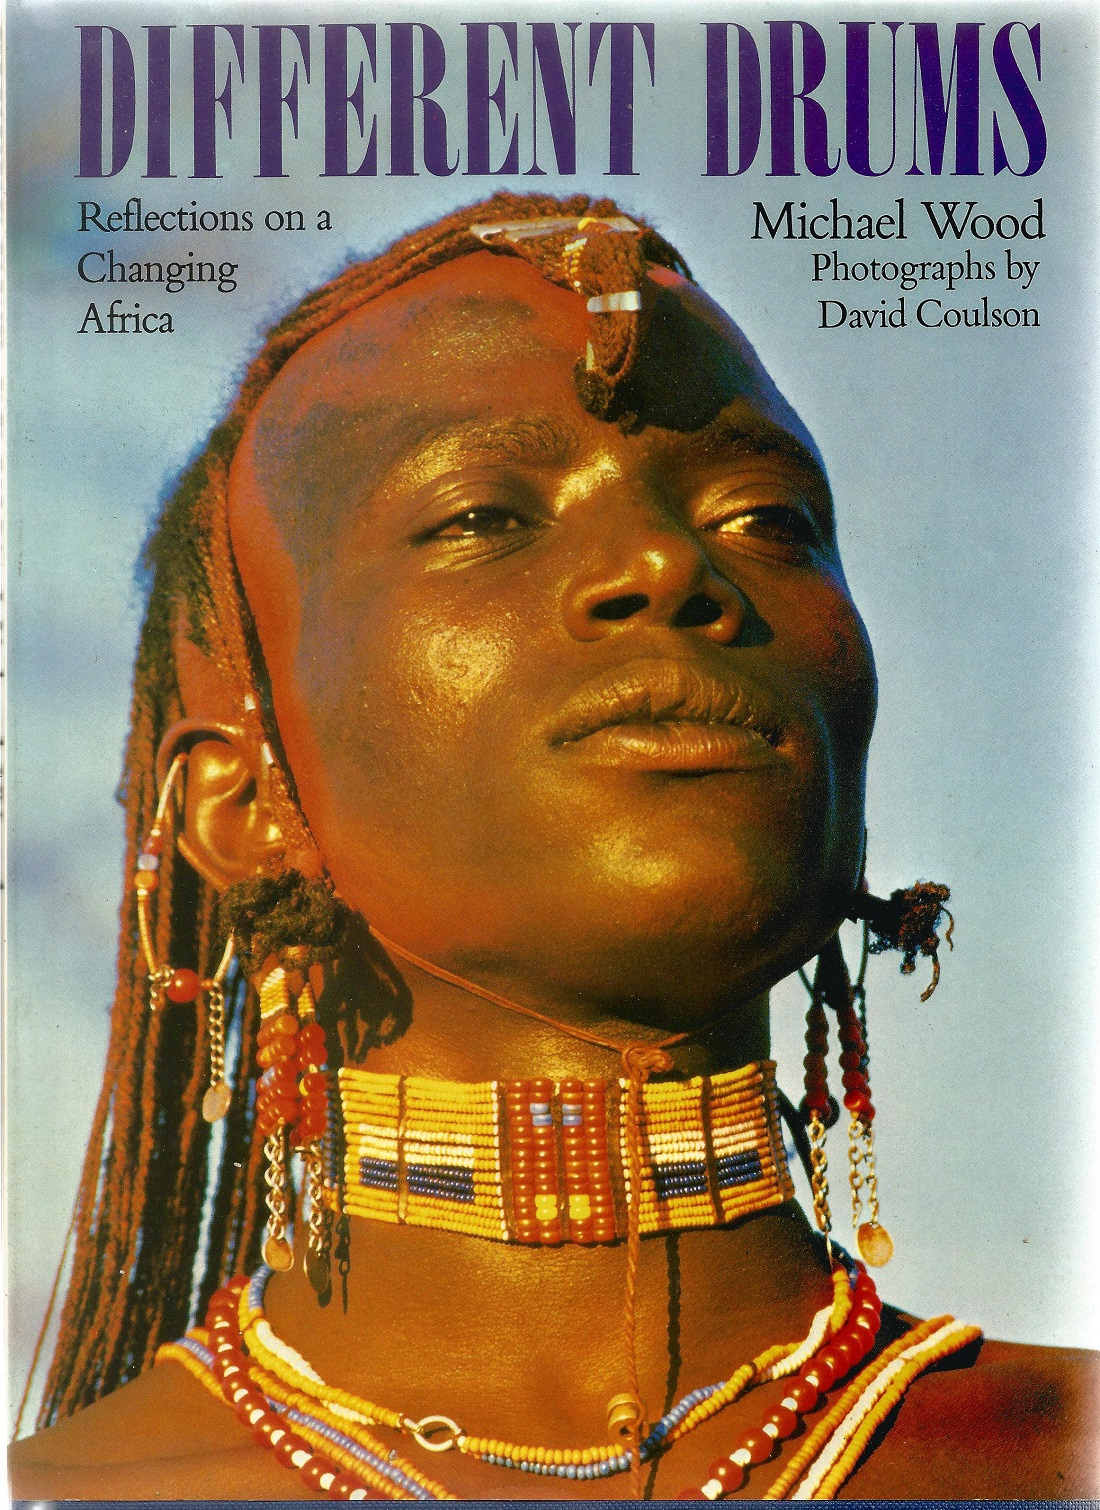 Signed Hardback Book Different Drums Reflections on a changing Africa by Michael Wood with photos by - Image 2 of 7